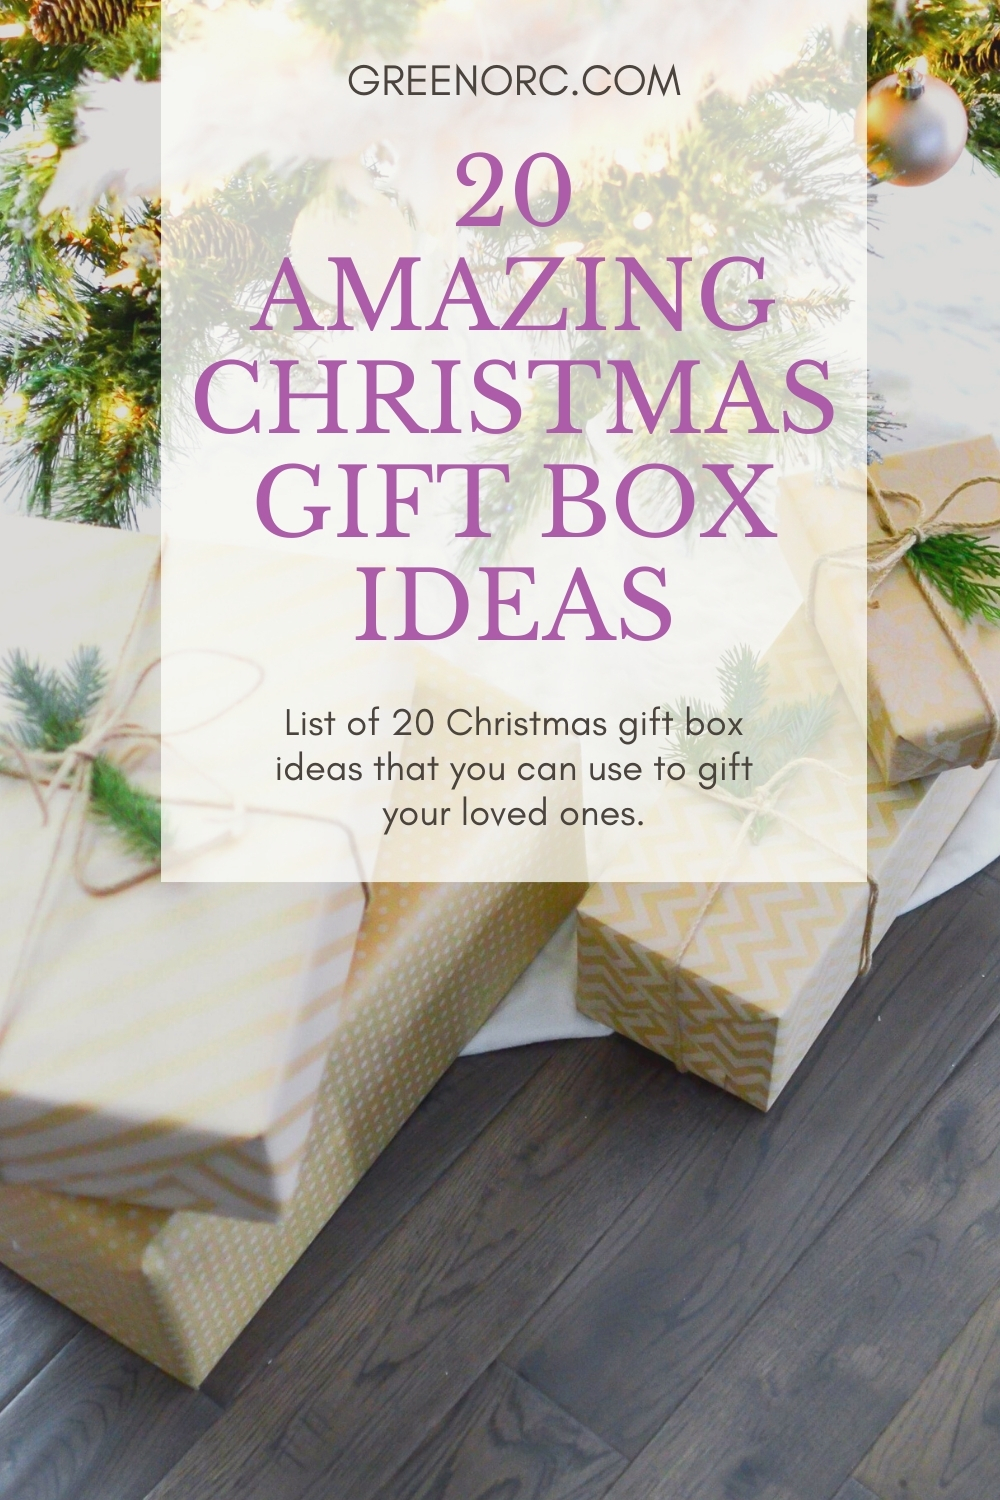 Christmas decorations with wrapped gift boxes